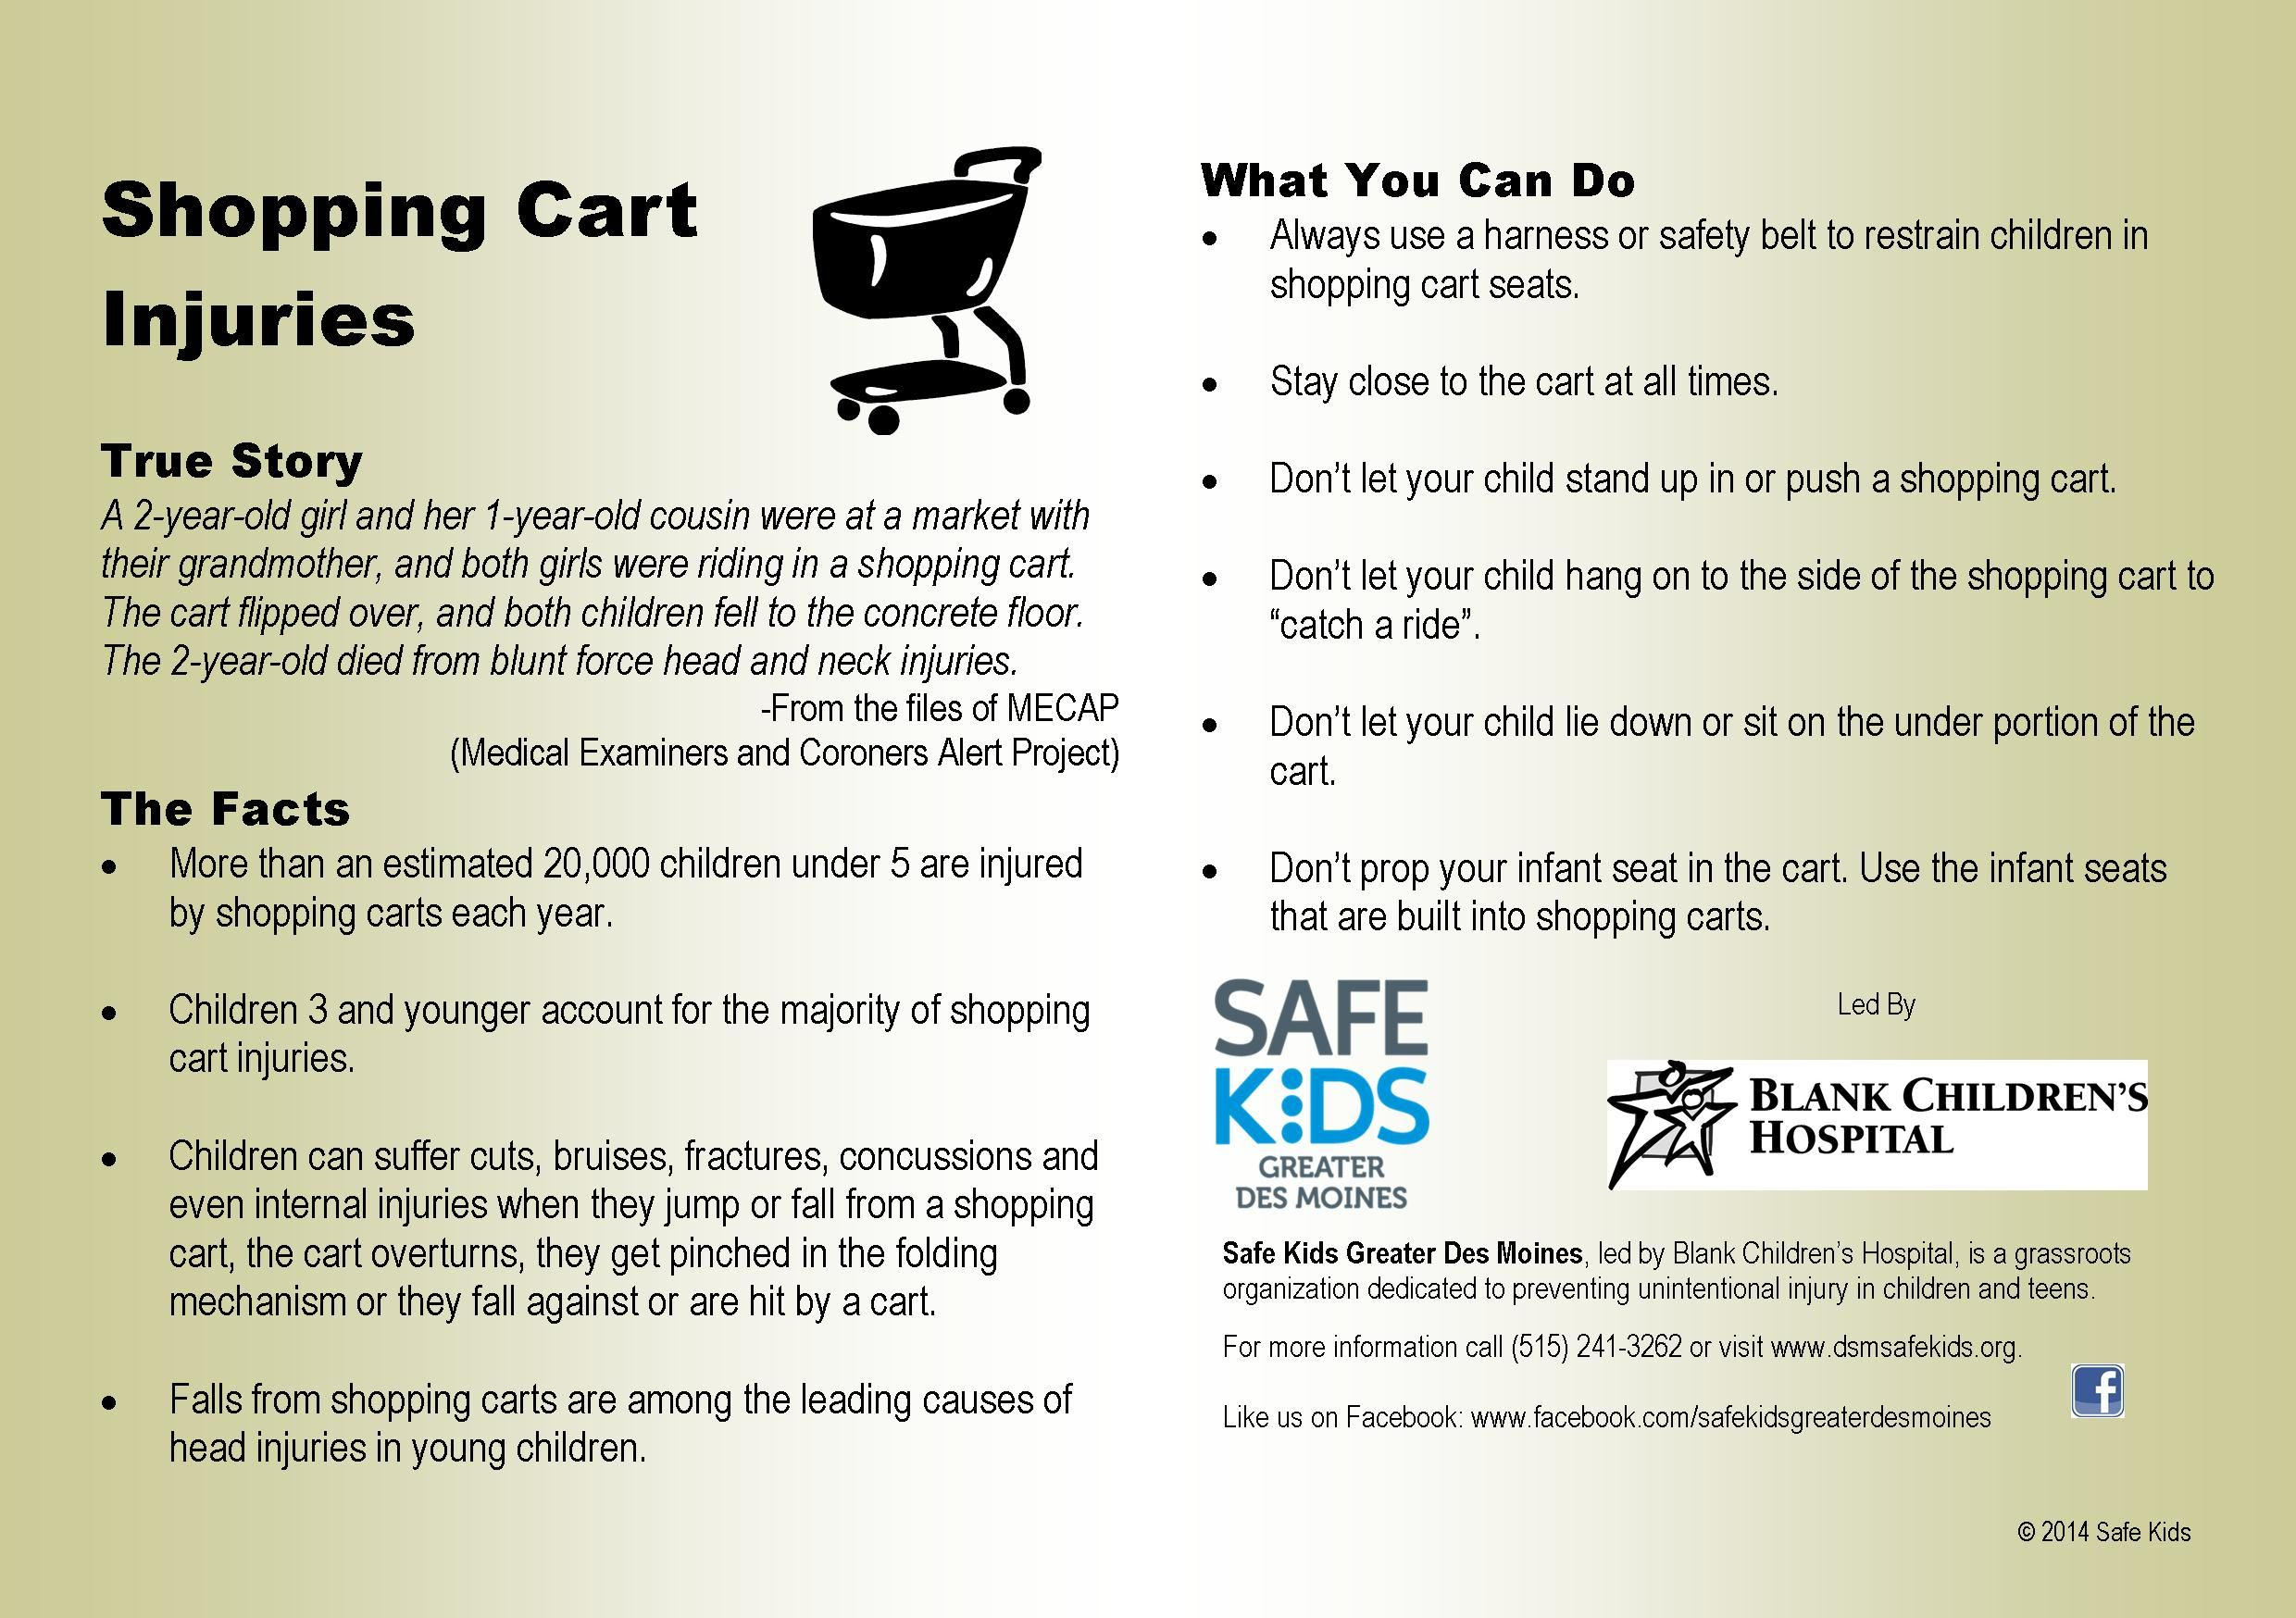 Shopping Cart Safety Tips